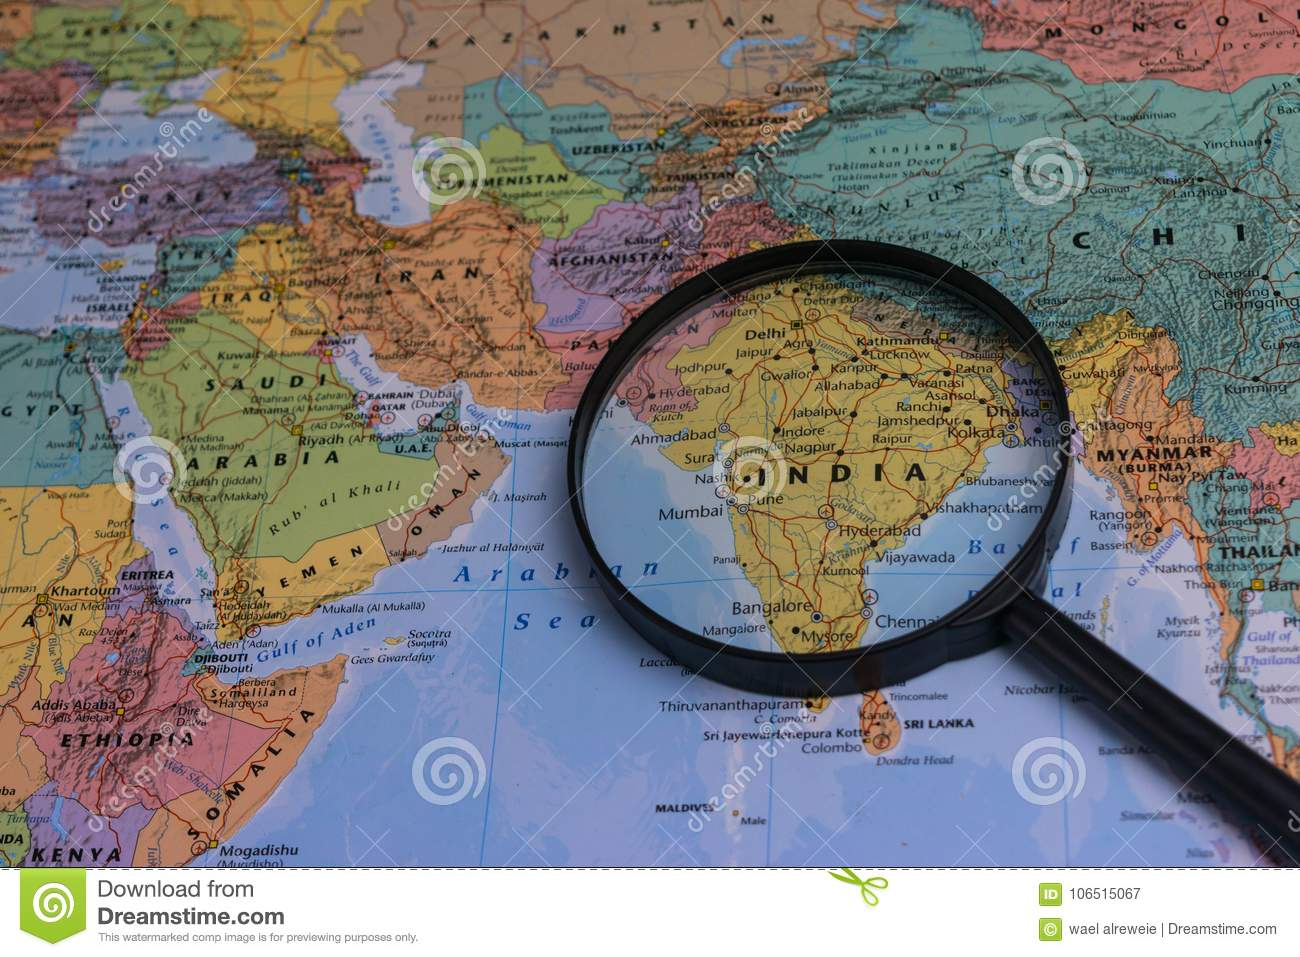 Map of india through magnifying glass on a world map stock image download map of india through magnifying glass on a world map stock image image gumiabroncs Gallery